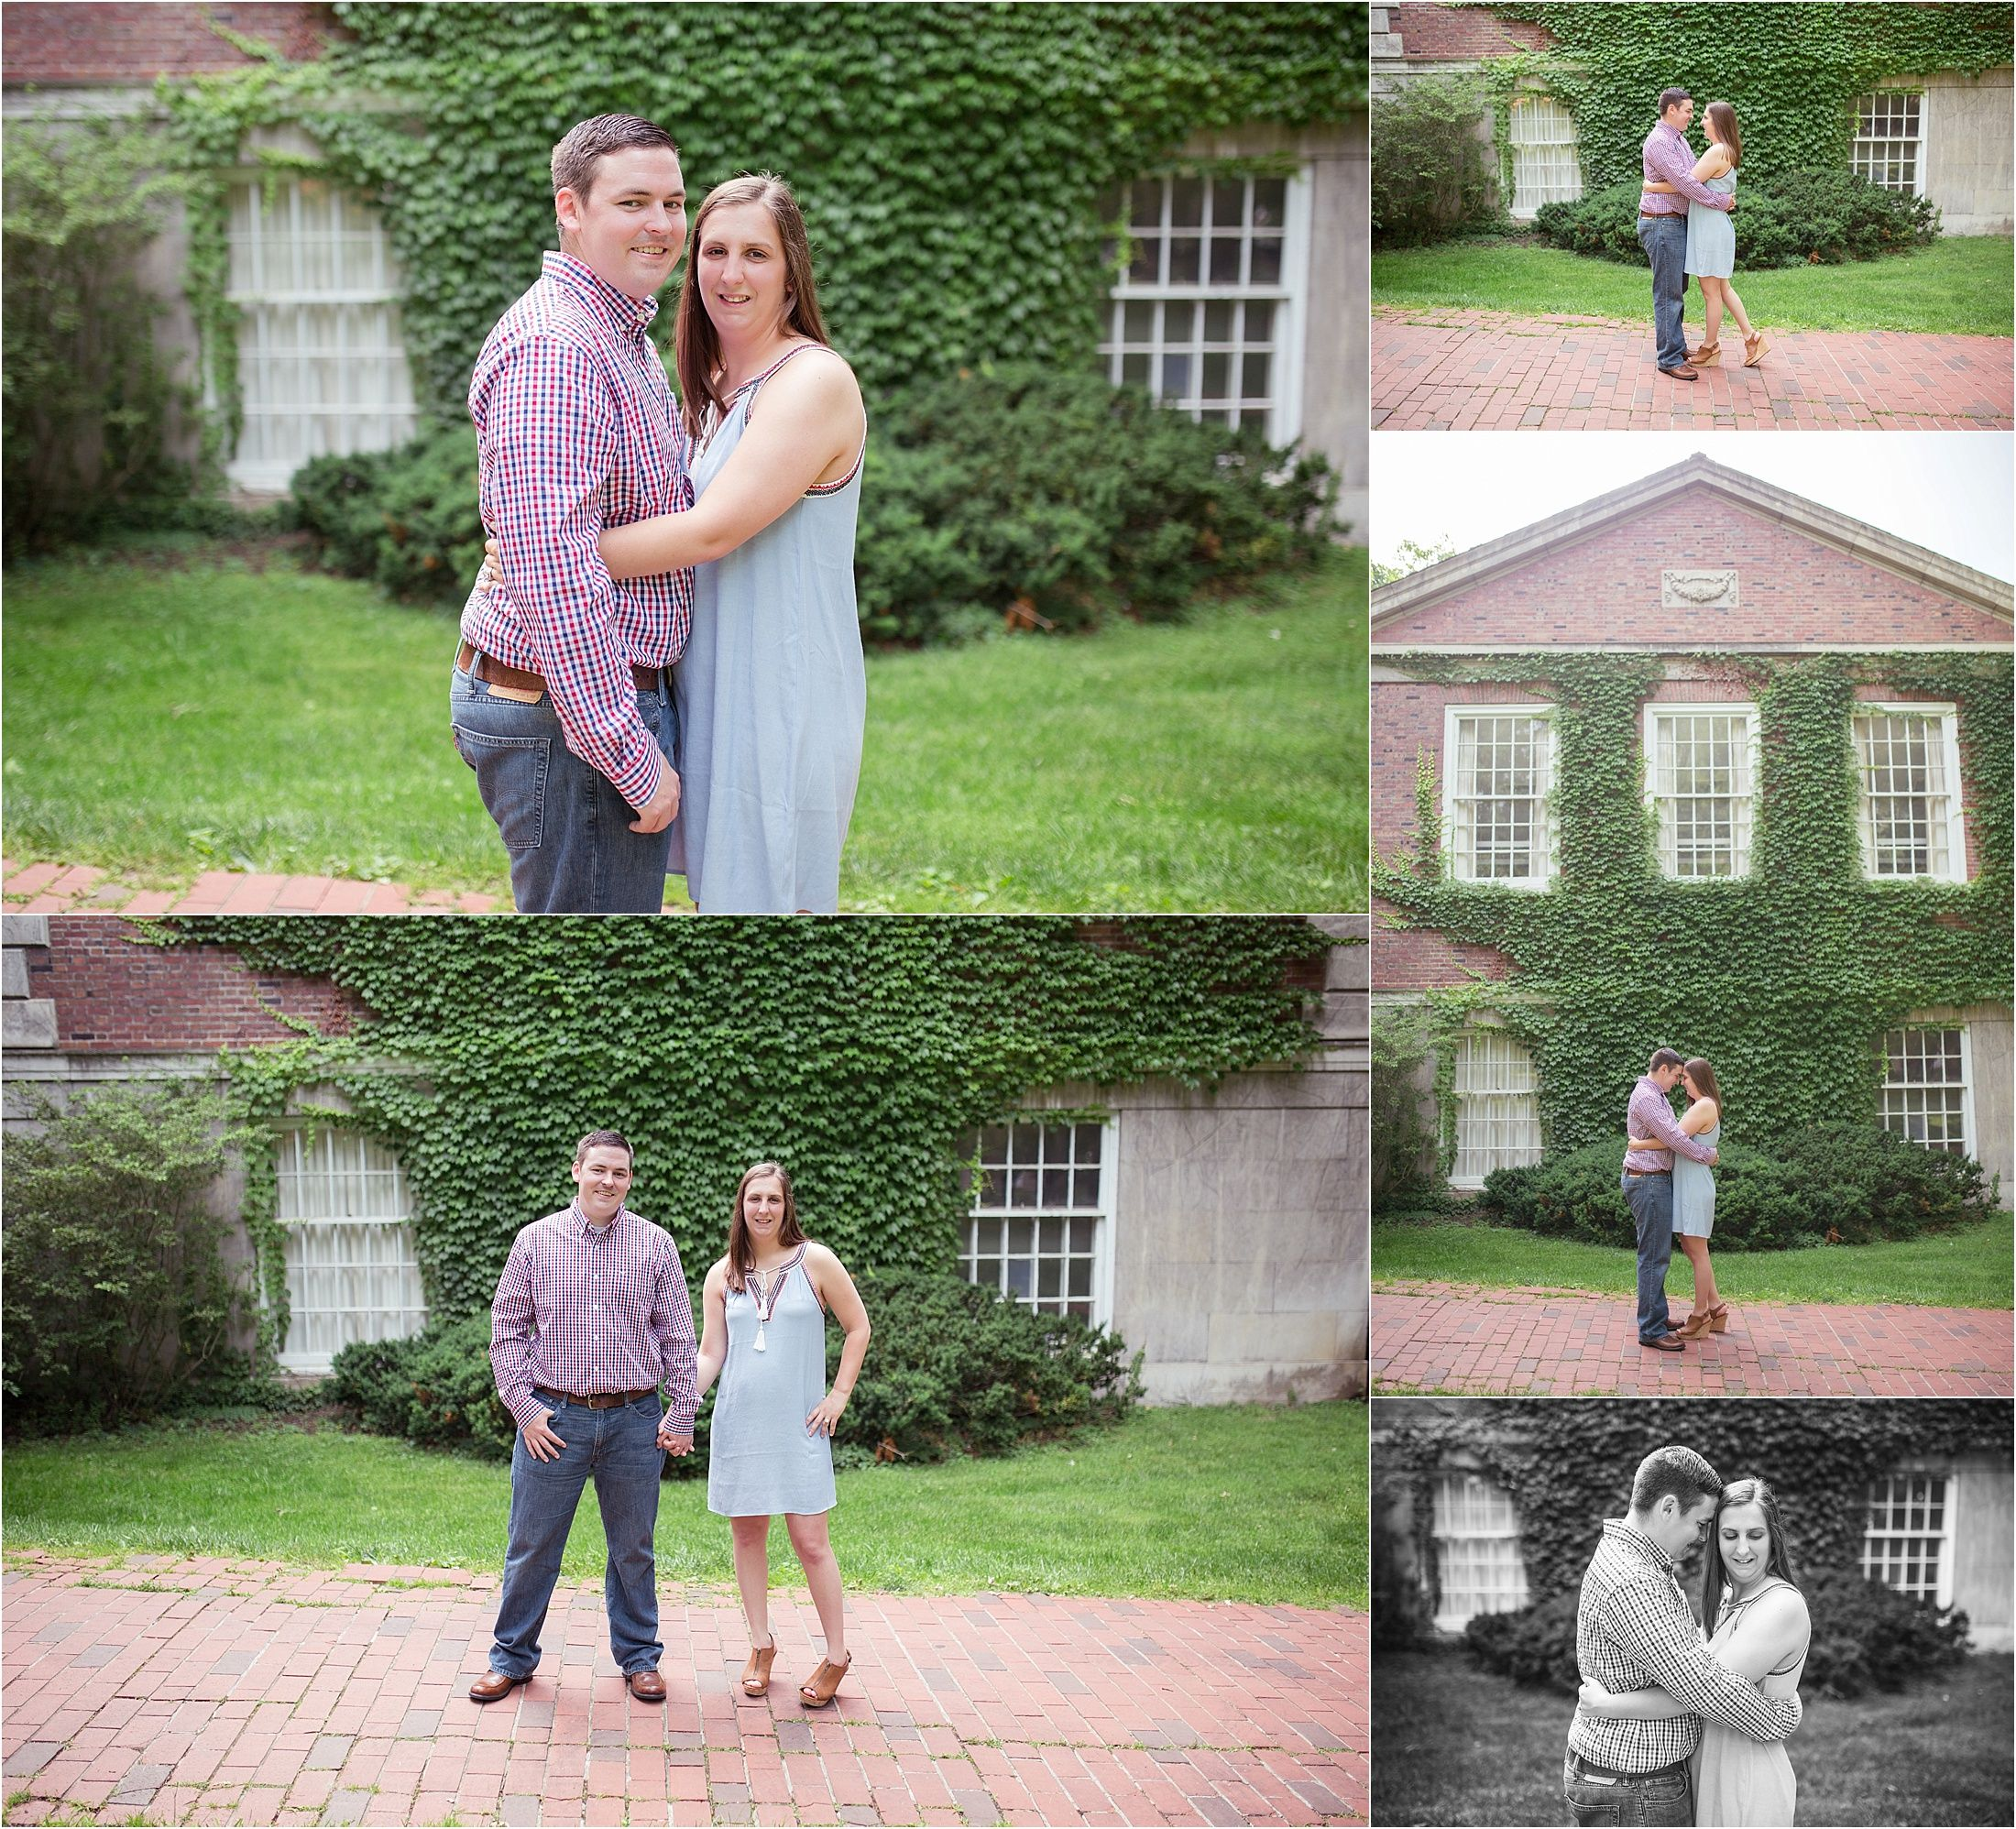 A summer engagement session at Ohio University's campus in Athens, Ohio